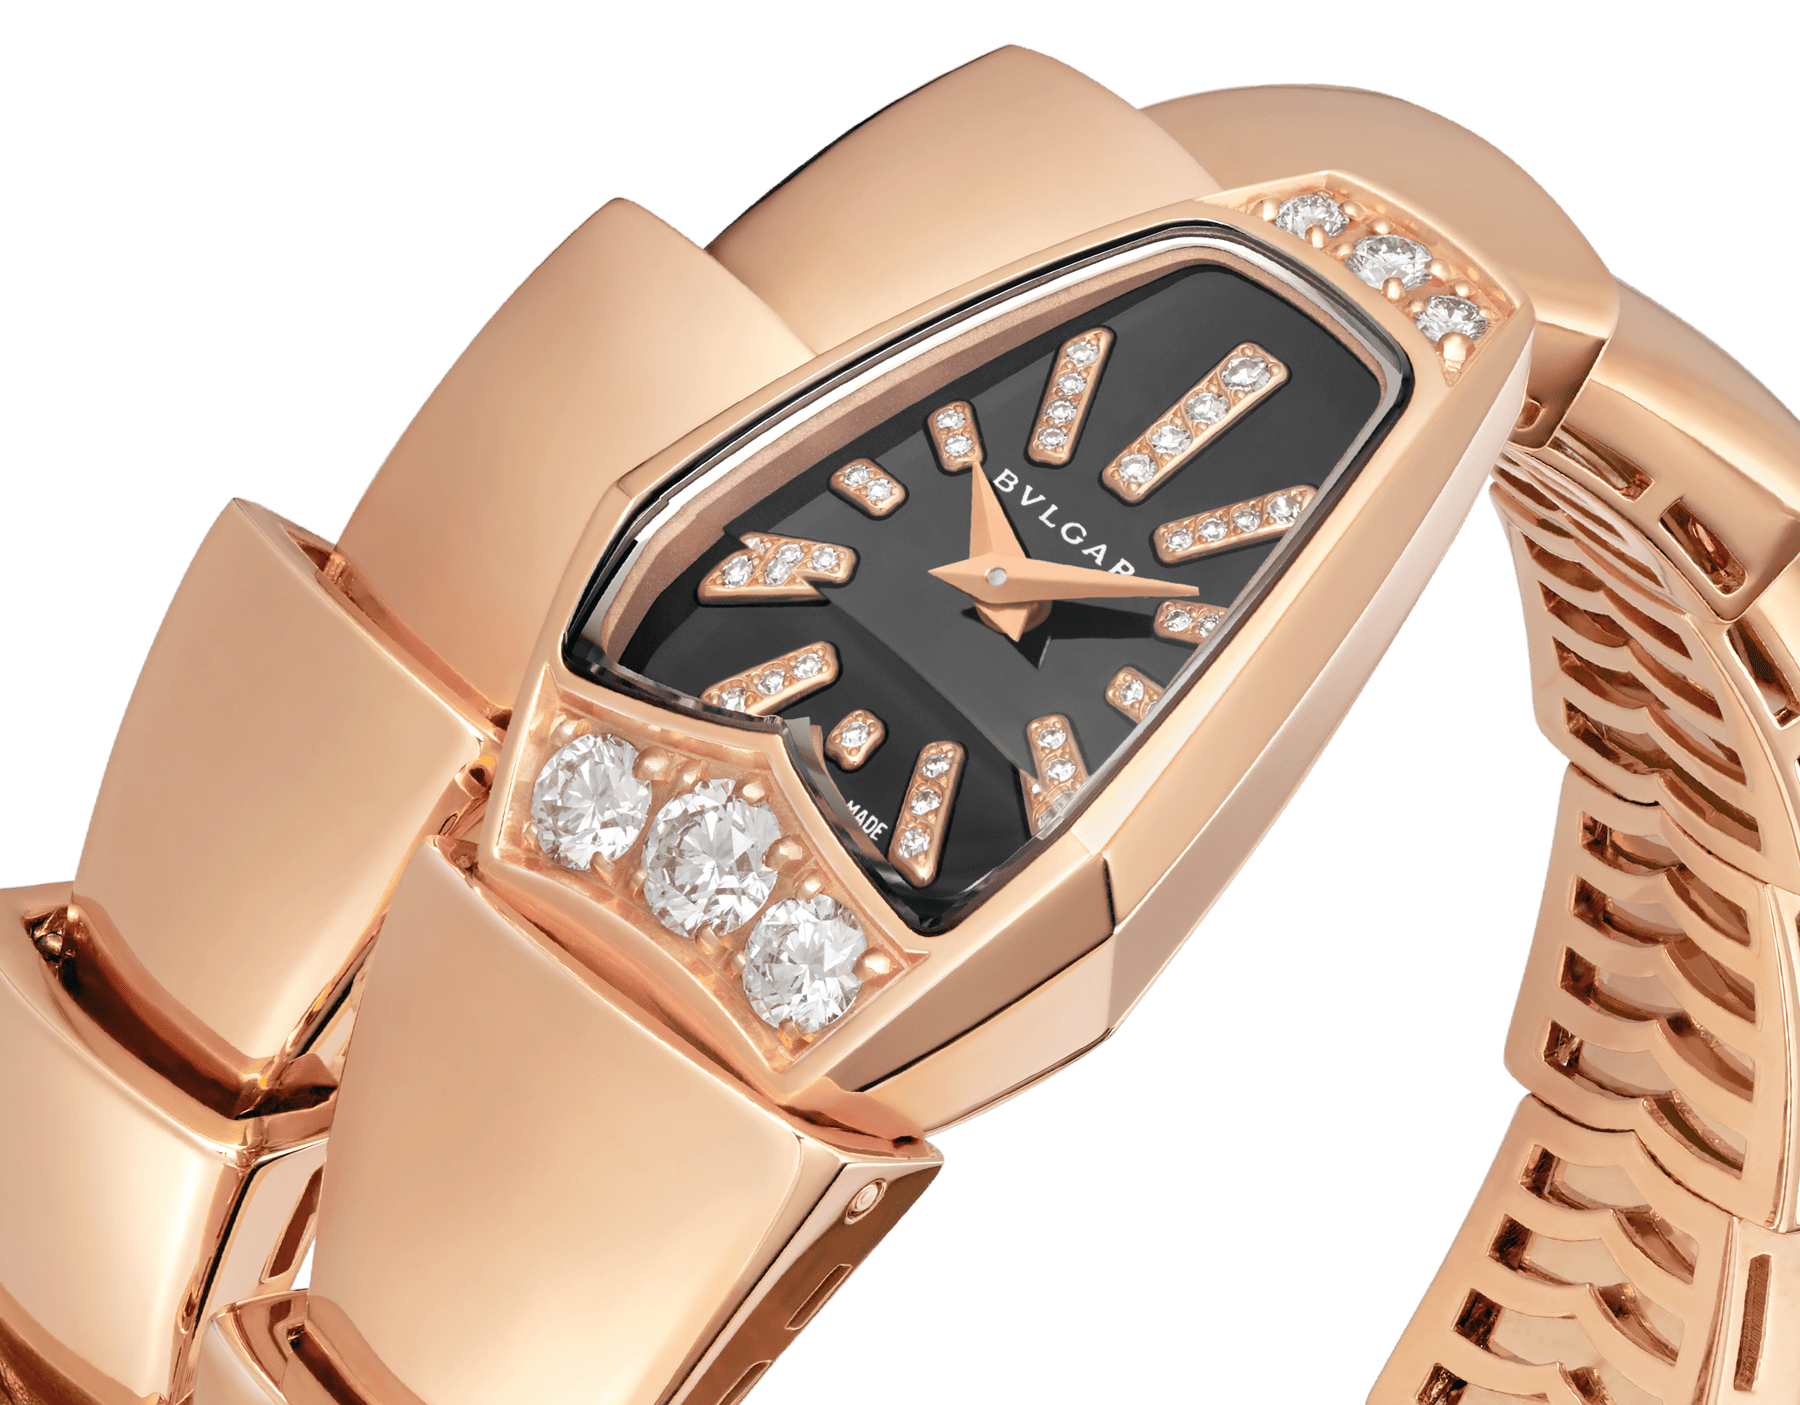 Serpenti Jewellery Watch with 18 kt rose gold case set with brilliant cut diamonds, black sapphire crystal dial, diamond indexes and 18 kt rose gold single spiral bracelet. 101788 image 2